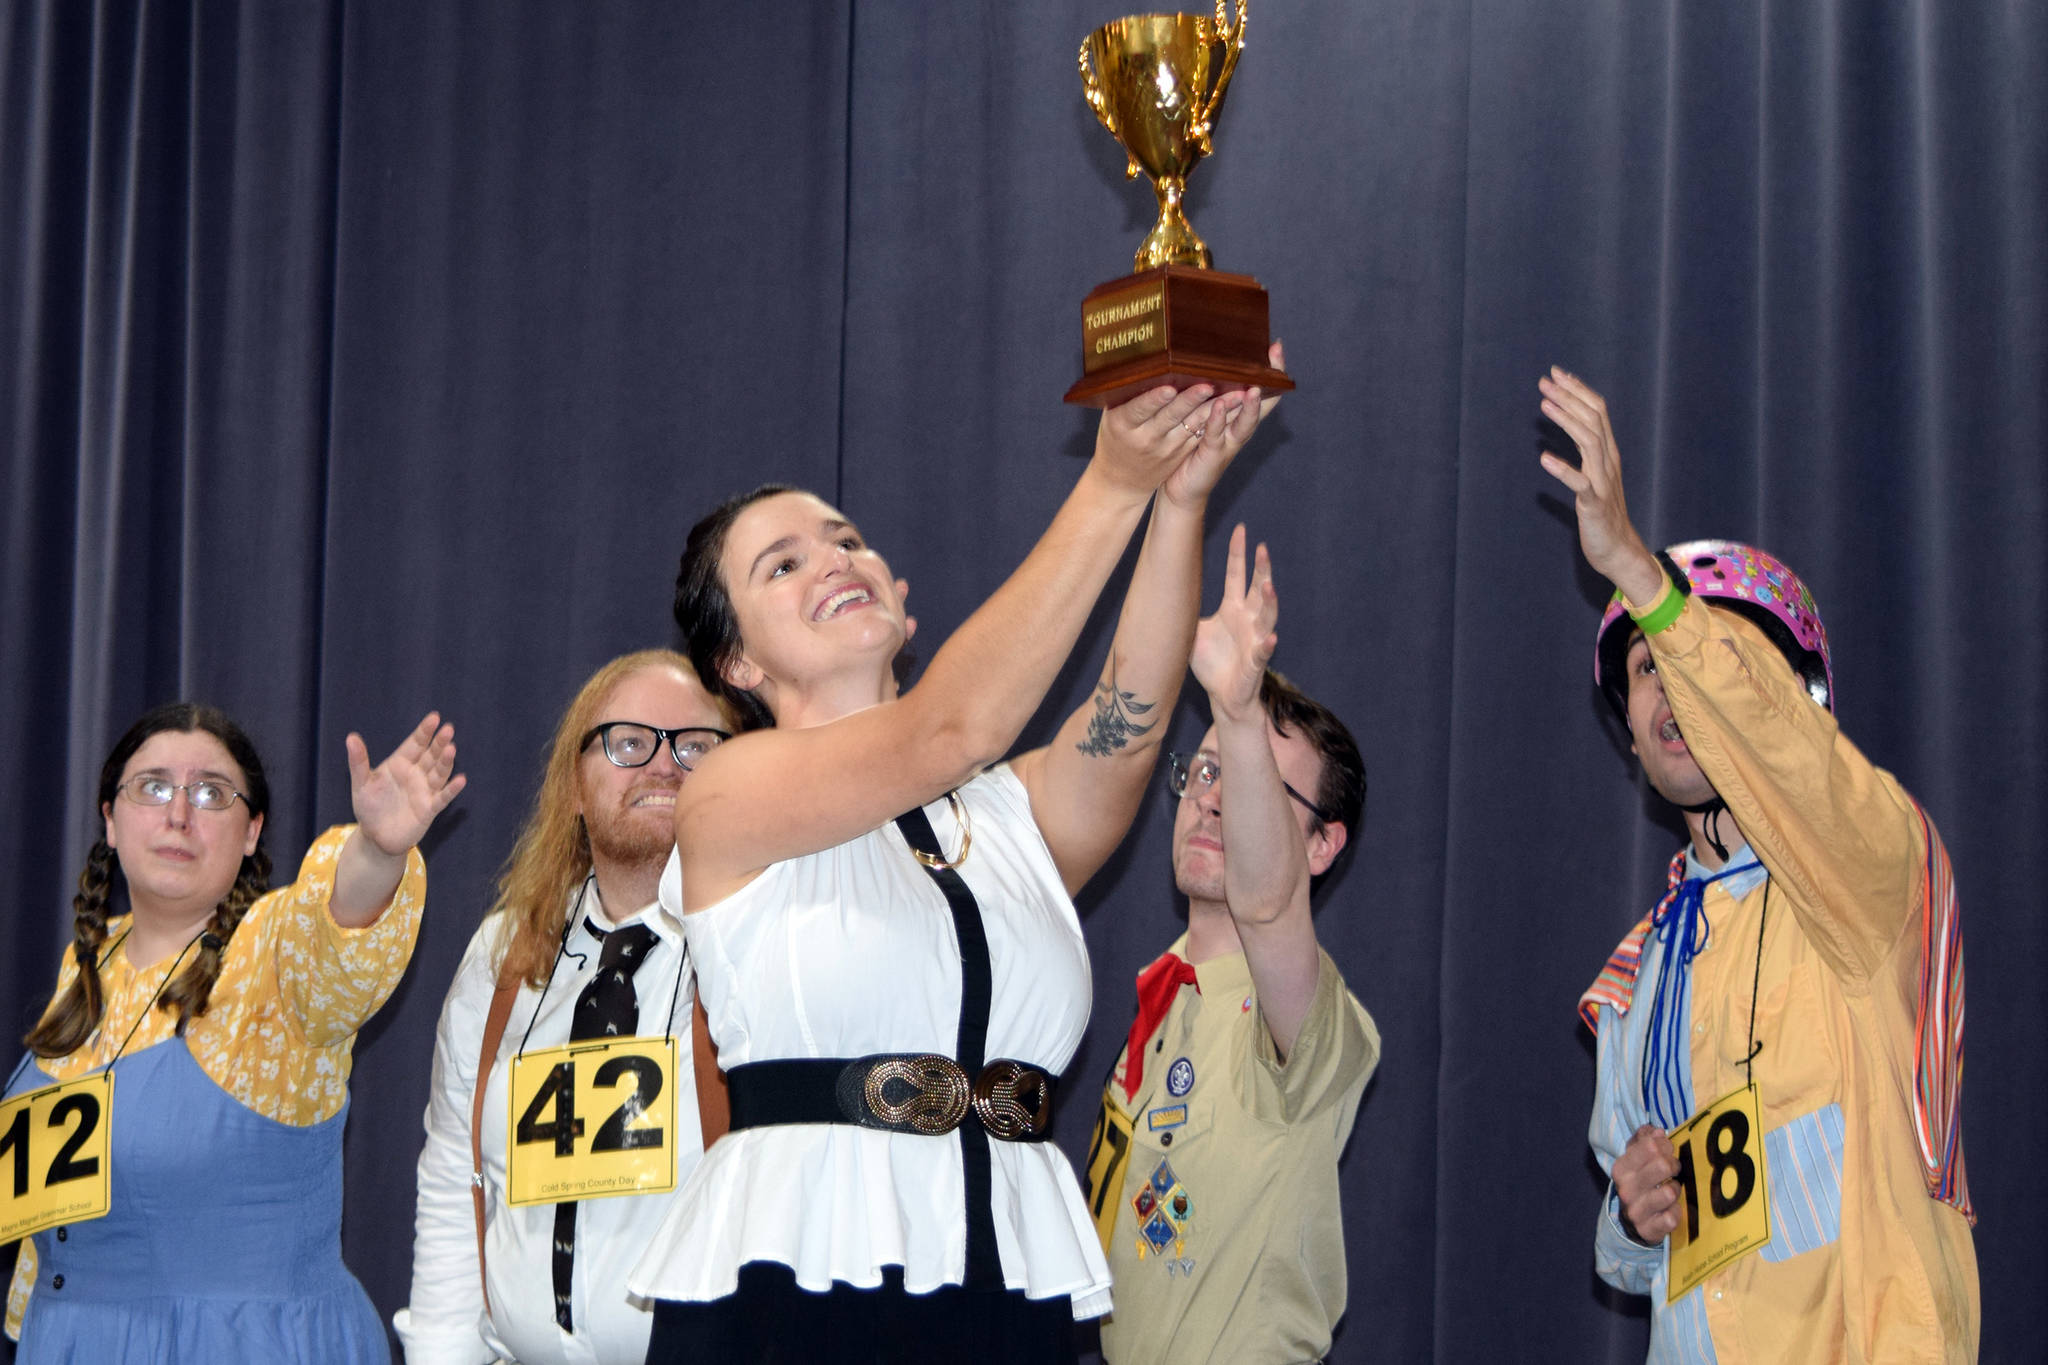 "Logainne Schwartzandgrubenniere (Kristina Paulick), William Barfee (Nomi Saxton), Chip Tolentino (Zebadiah Bodine) and Leaf Coneybear (Felix Thillet) covet a trophy held aloft by Rona Liza Perretti (Jess Skiba) during rehearsals for ""The 25th Annual Putnam County Spelling Bee"" Tuesday, Sept. 3, 2019. (Ben Hohenstatt 